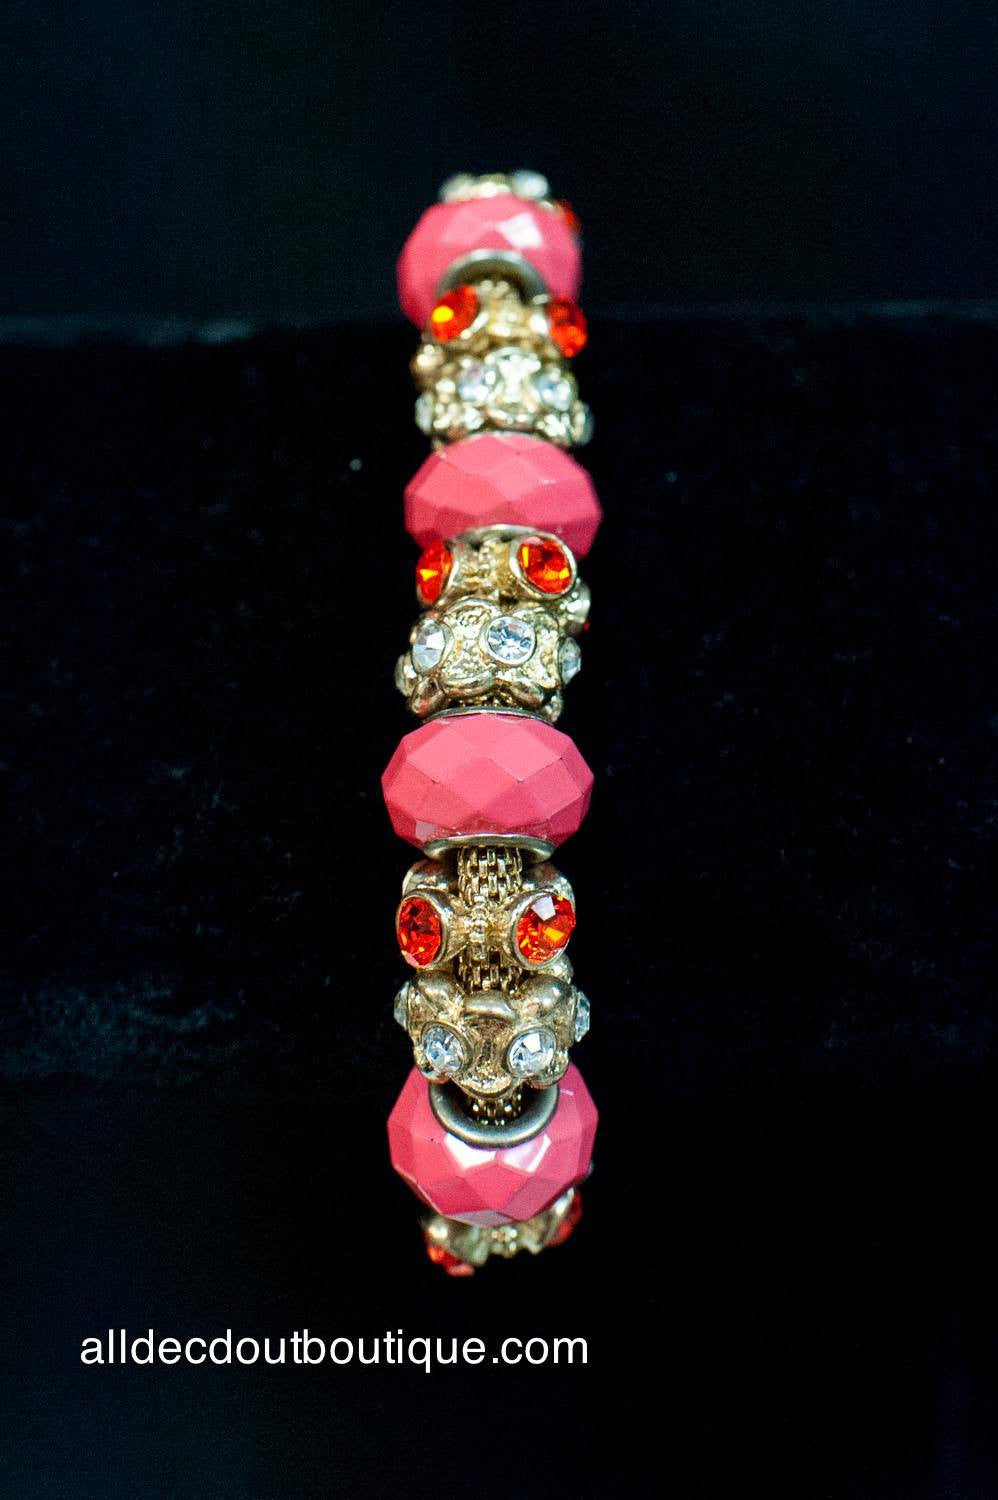 ADO | Gold Stretch Bracelet with Hot Pink Beads - All Decd Out